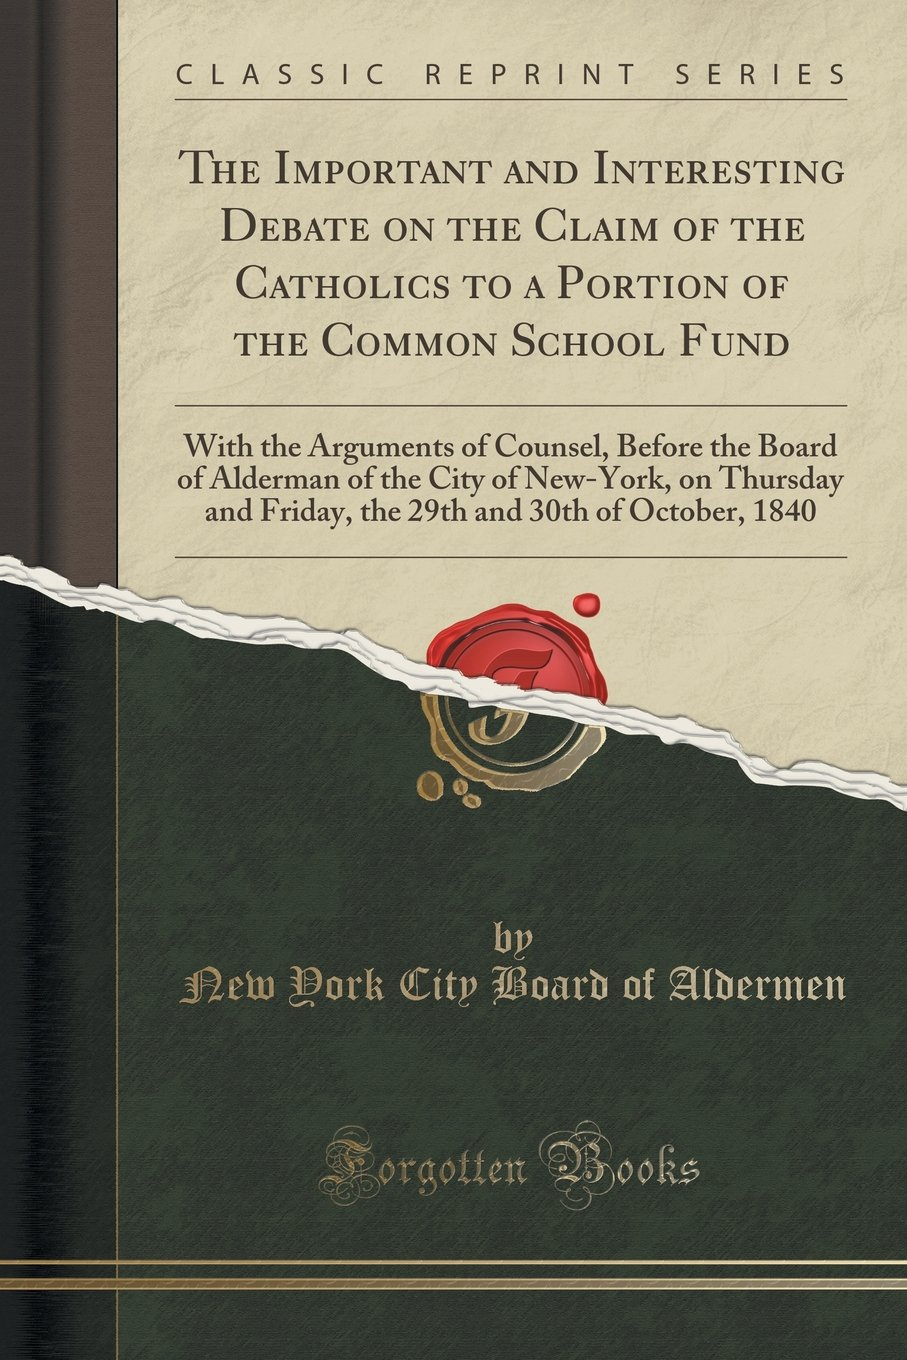 Read Online The Important and Interesting Debate on the Claim of the Catholics to a Portion of the Common School Fund: With the Arguments of Counsel, Before the Friday, the 29th and 30th of October, 1840 pdf